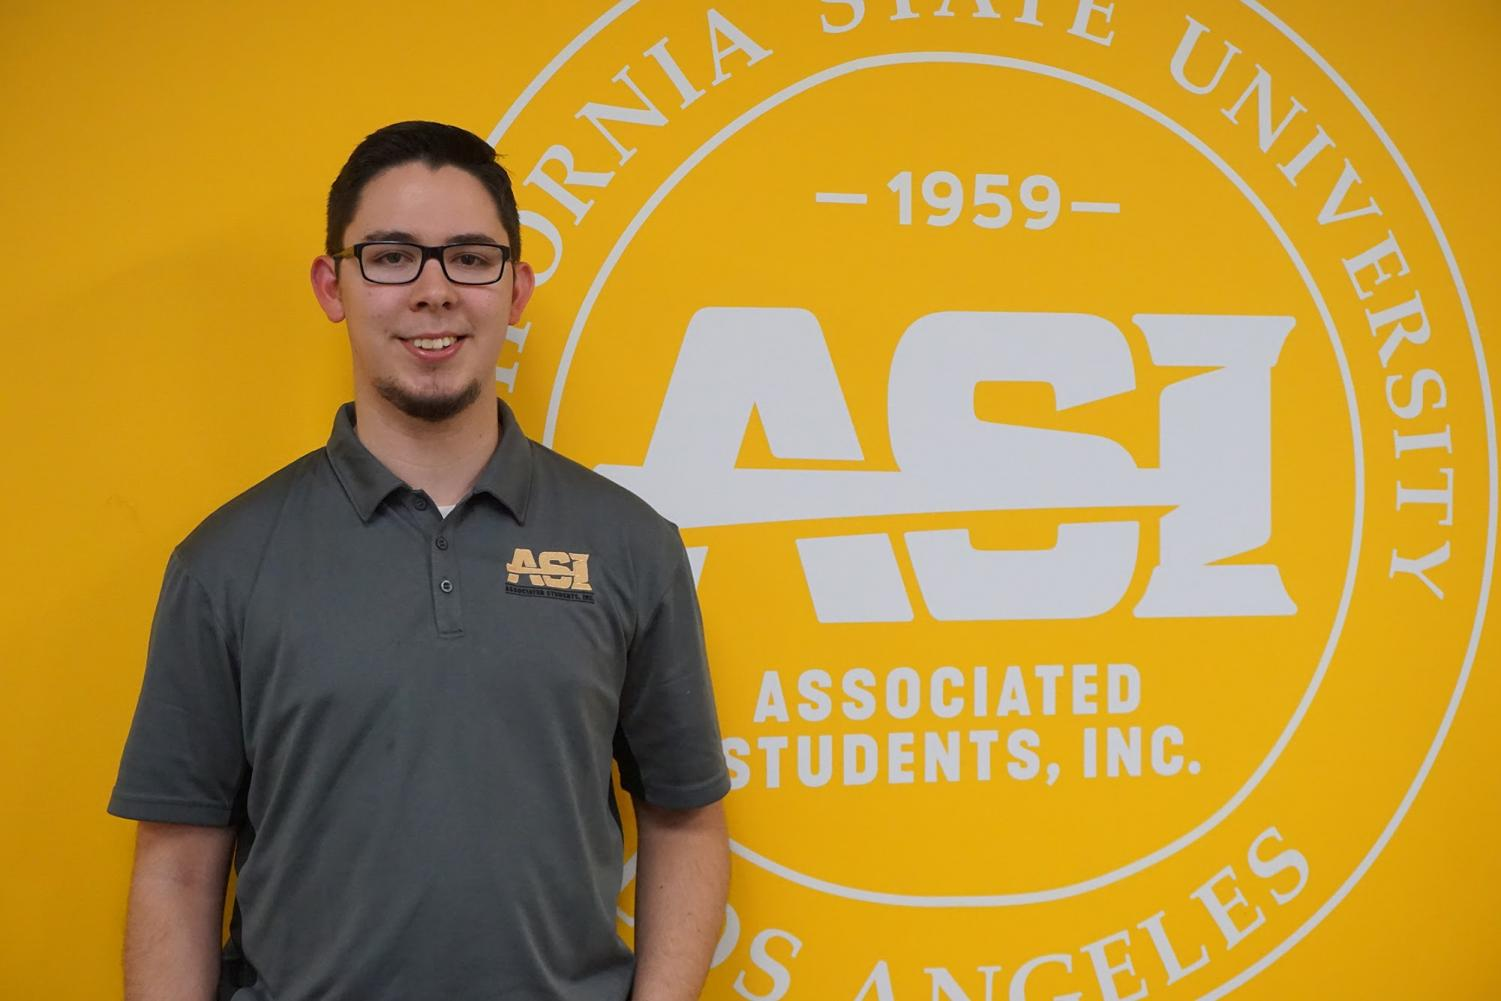 Aaron Castaneda, the ASI President for the 2019-2020 term.